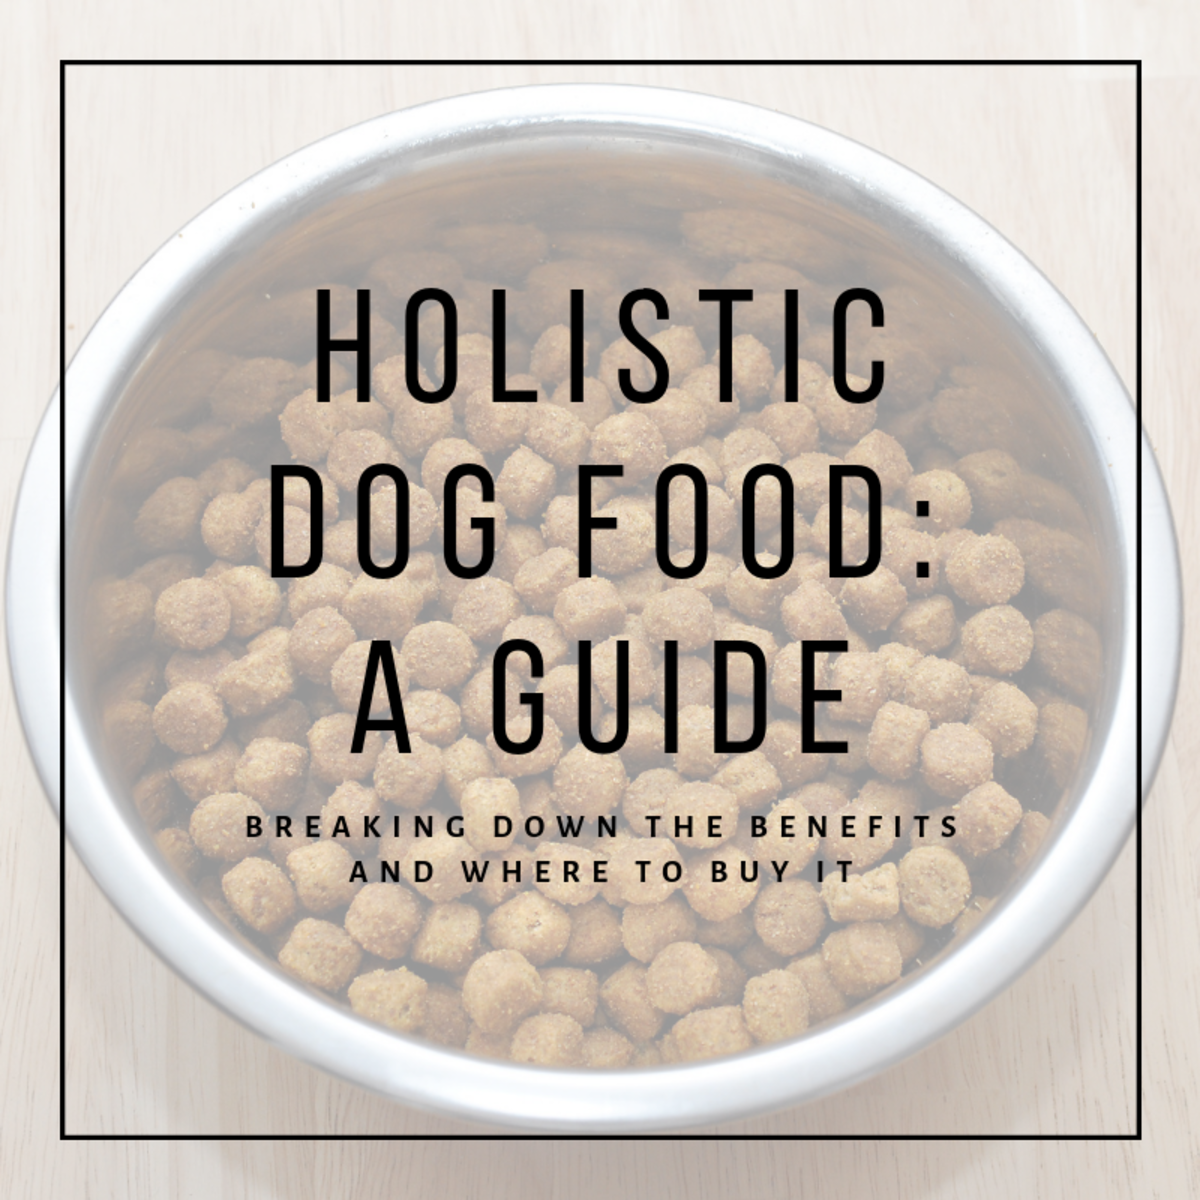 This article will break down just what holistic dog food is, what its benefits are, and where you can purchase it.